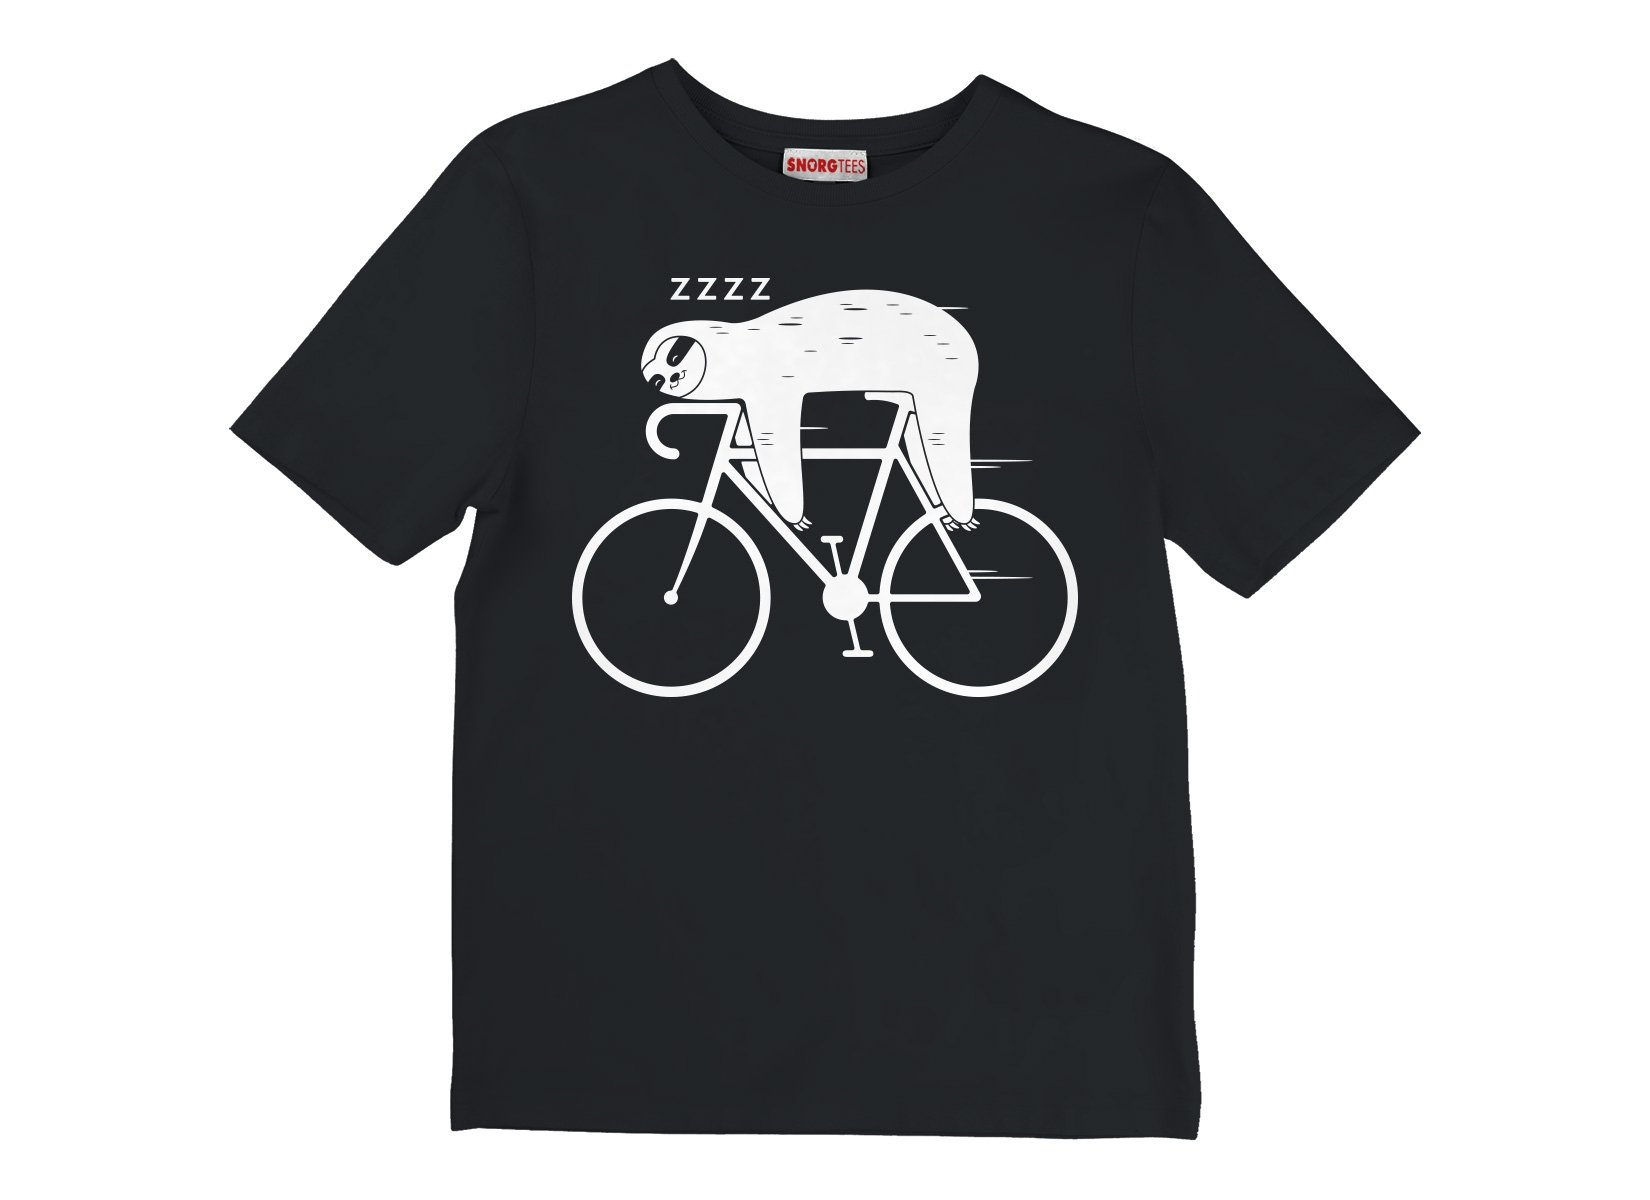 Slow Rider on Kids T-Shirt